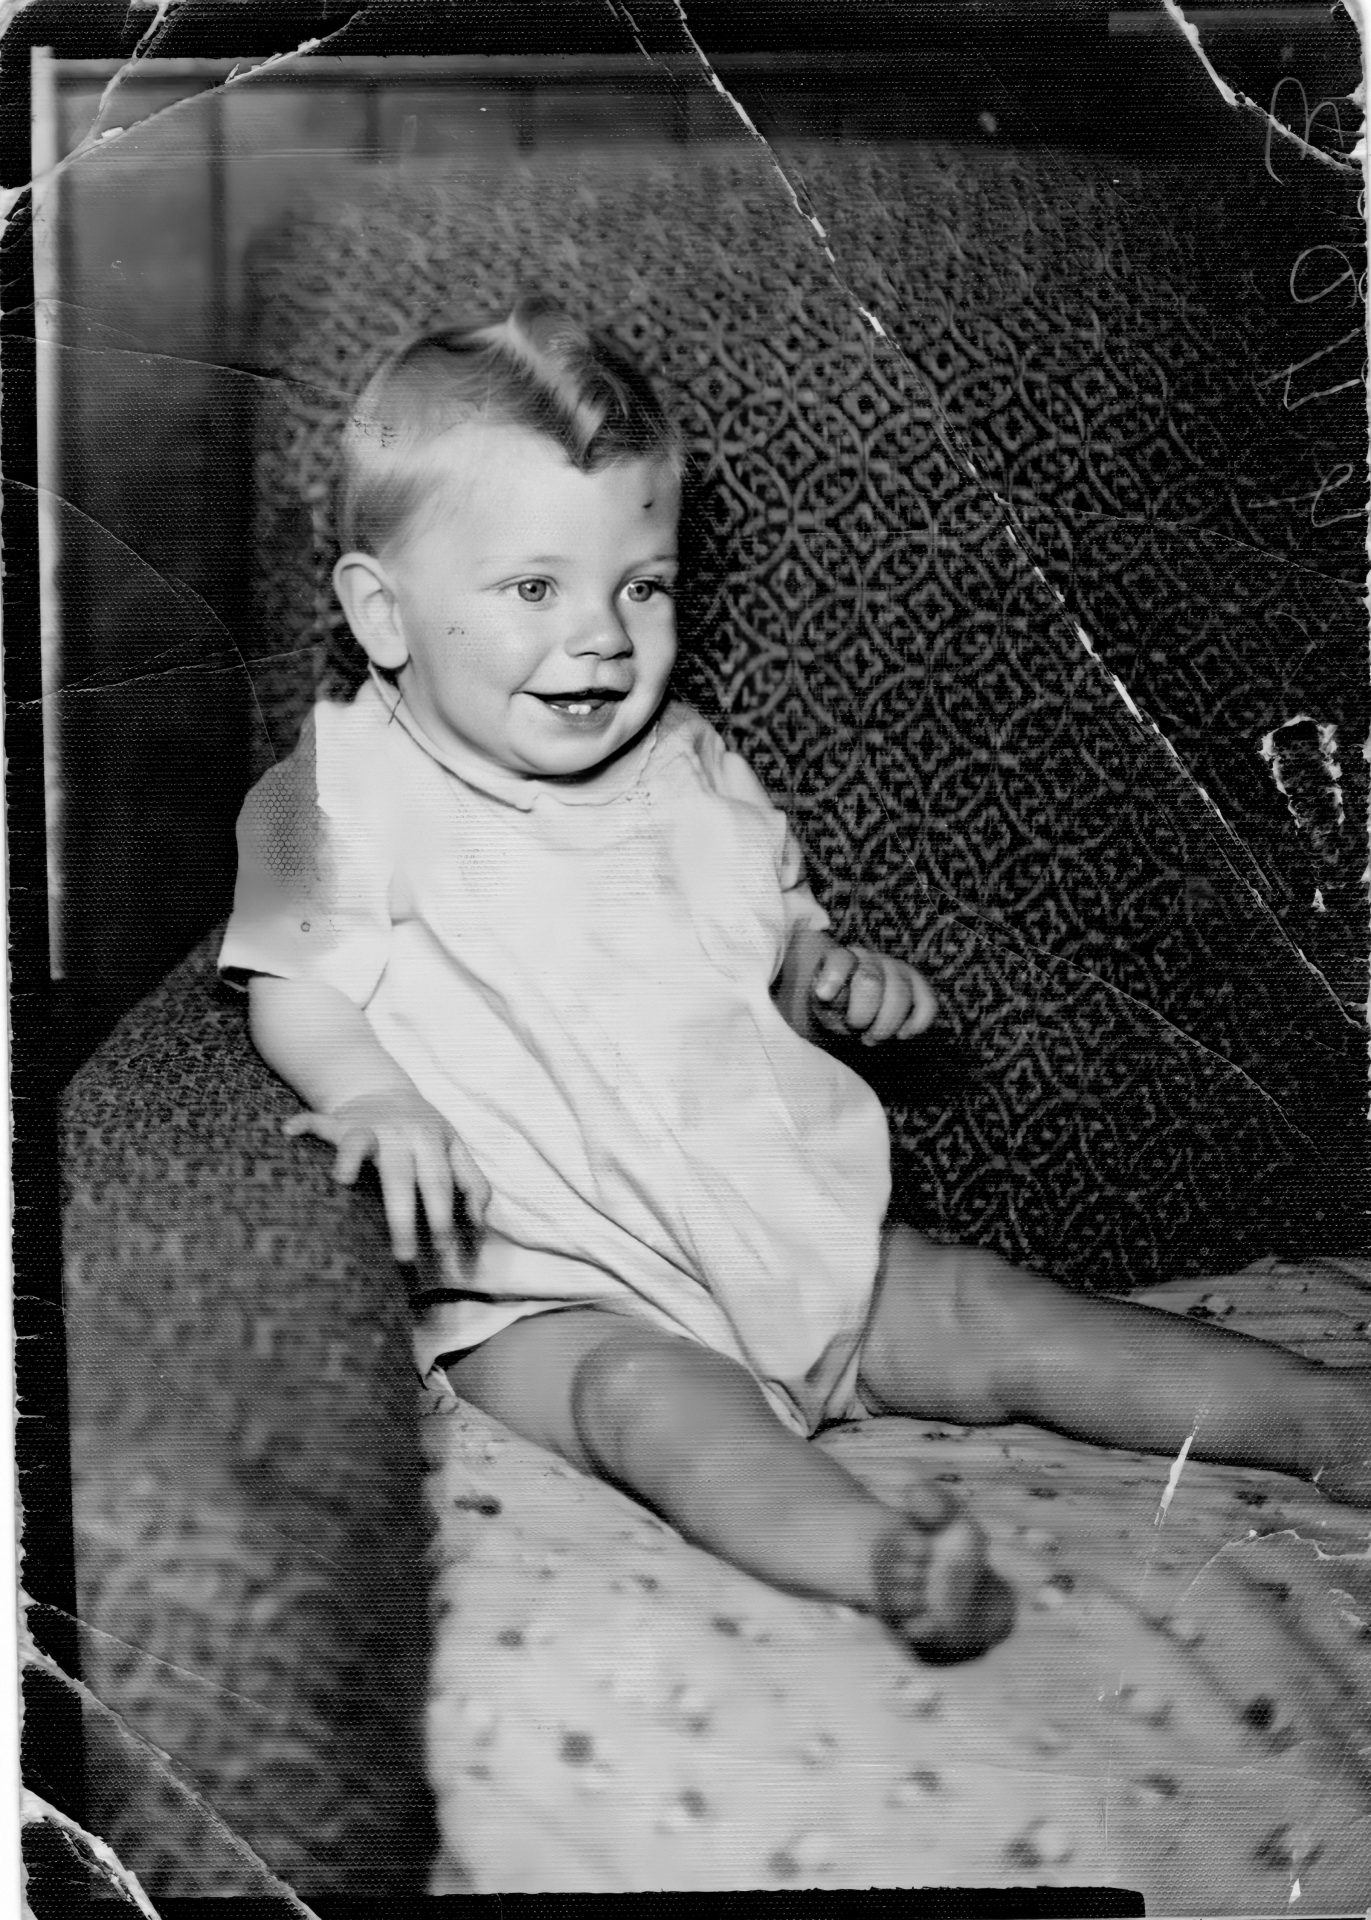 Russell as a Baby.